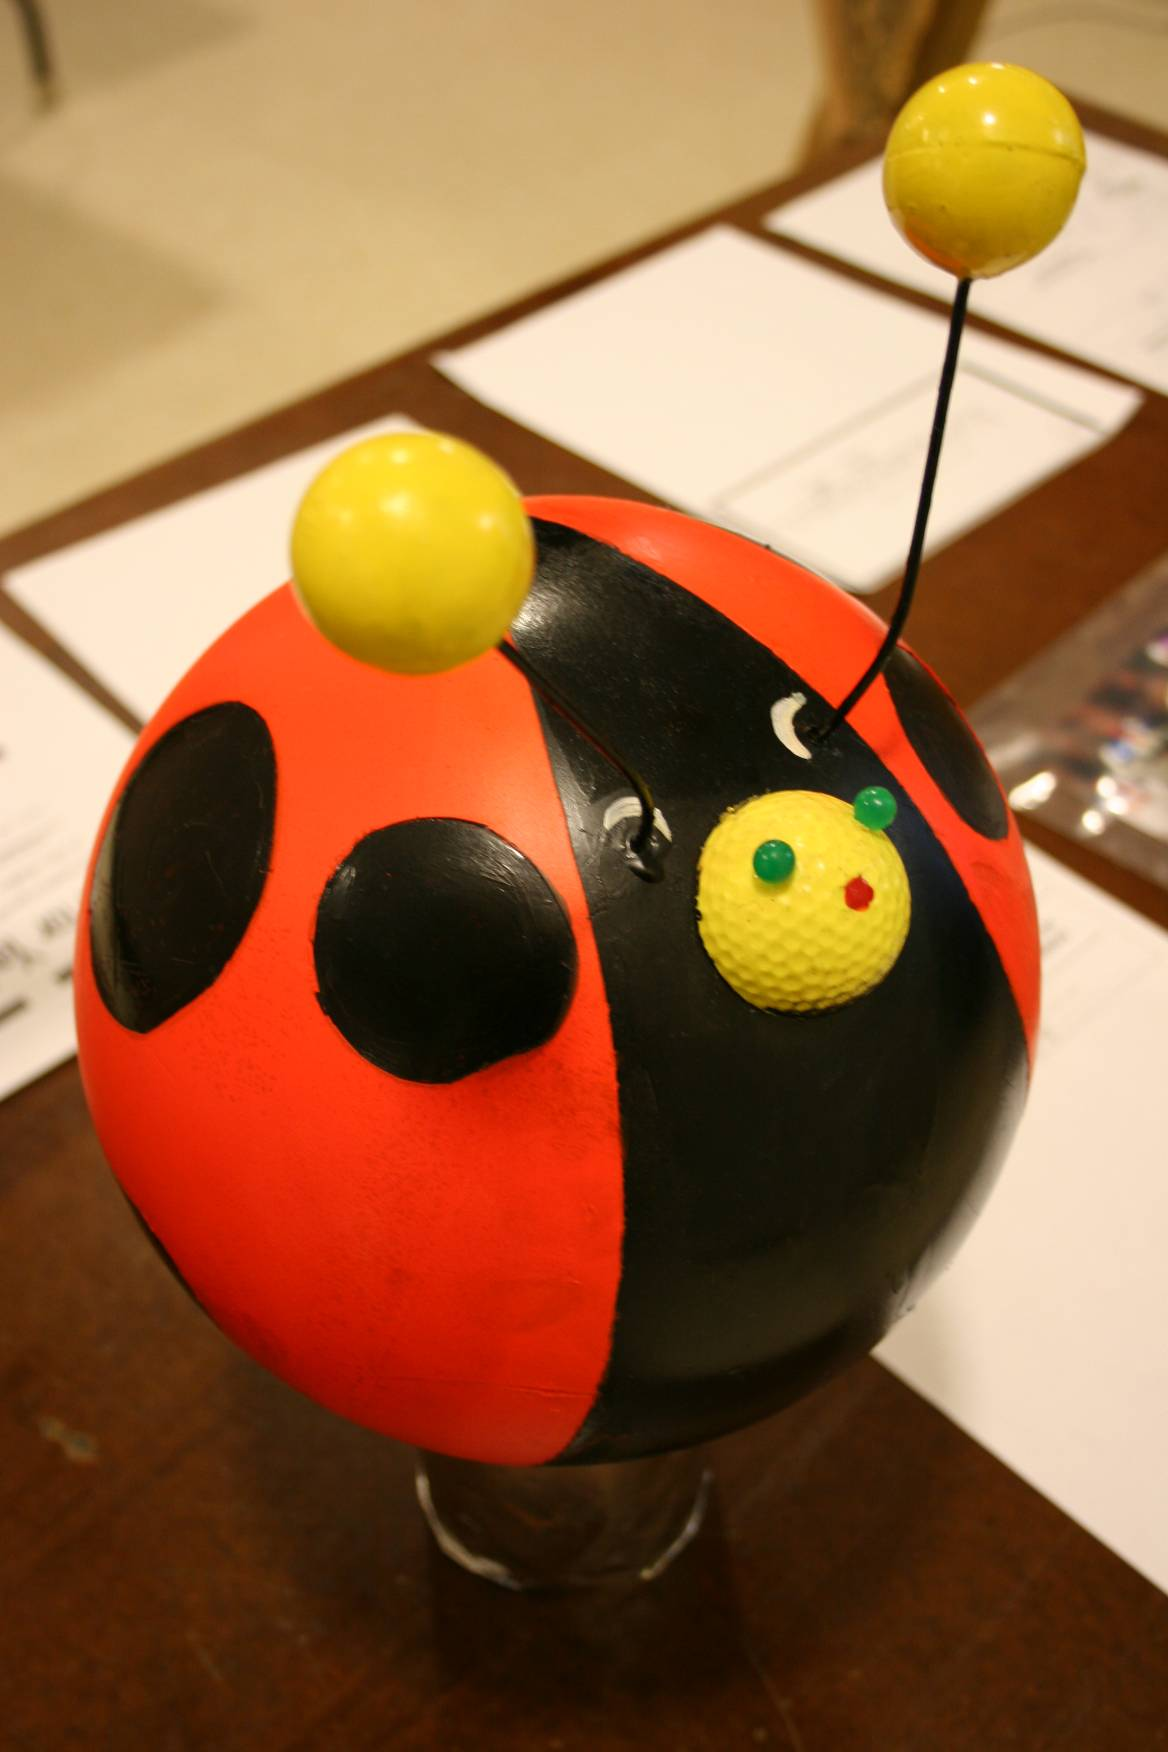 Dave Becher's two lady bugs drew winning bids of $30 and $35.